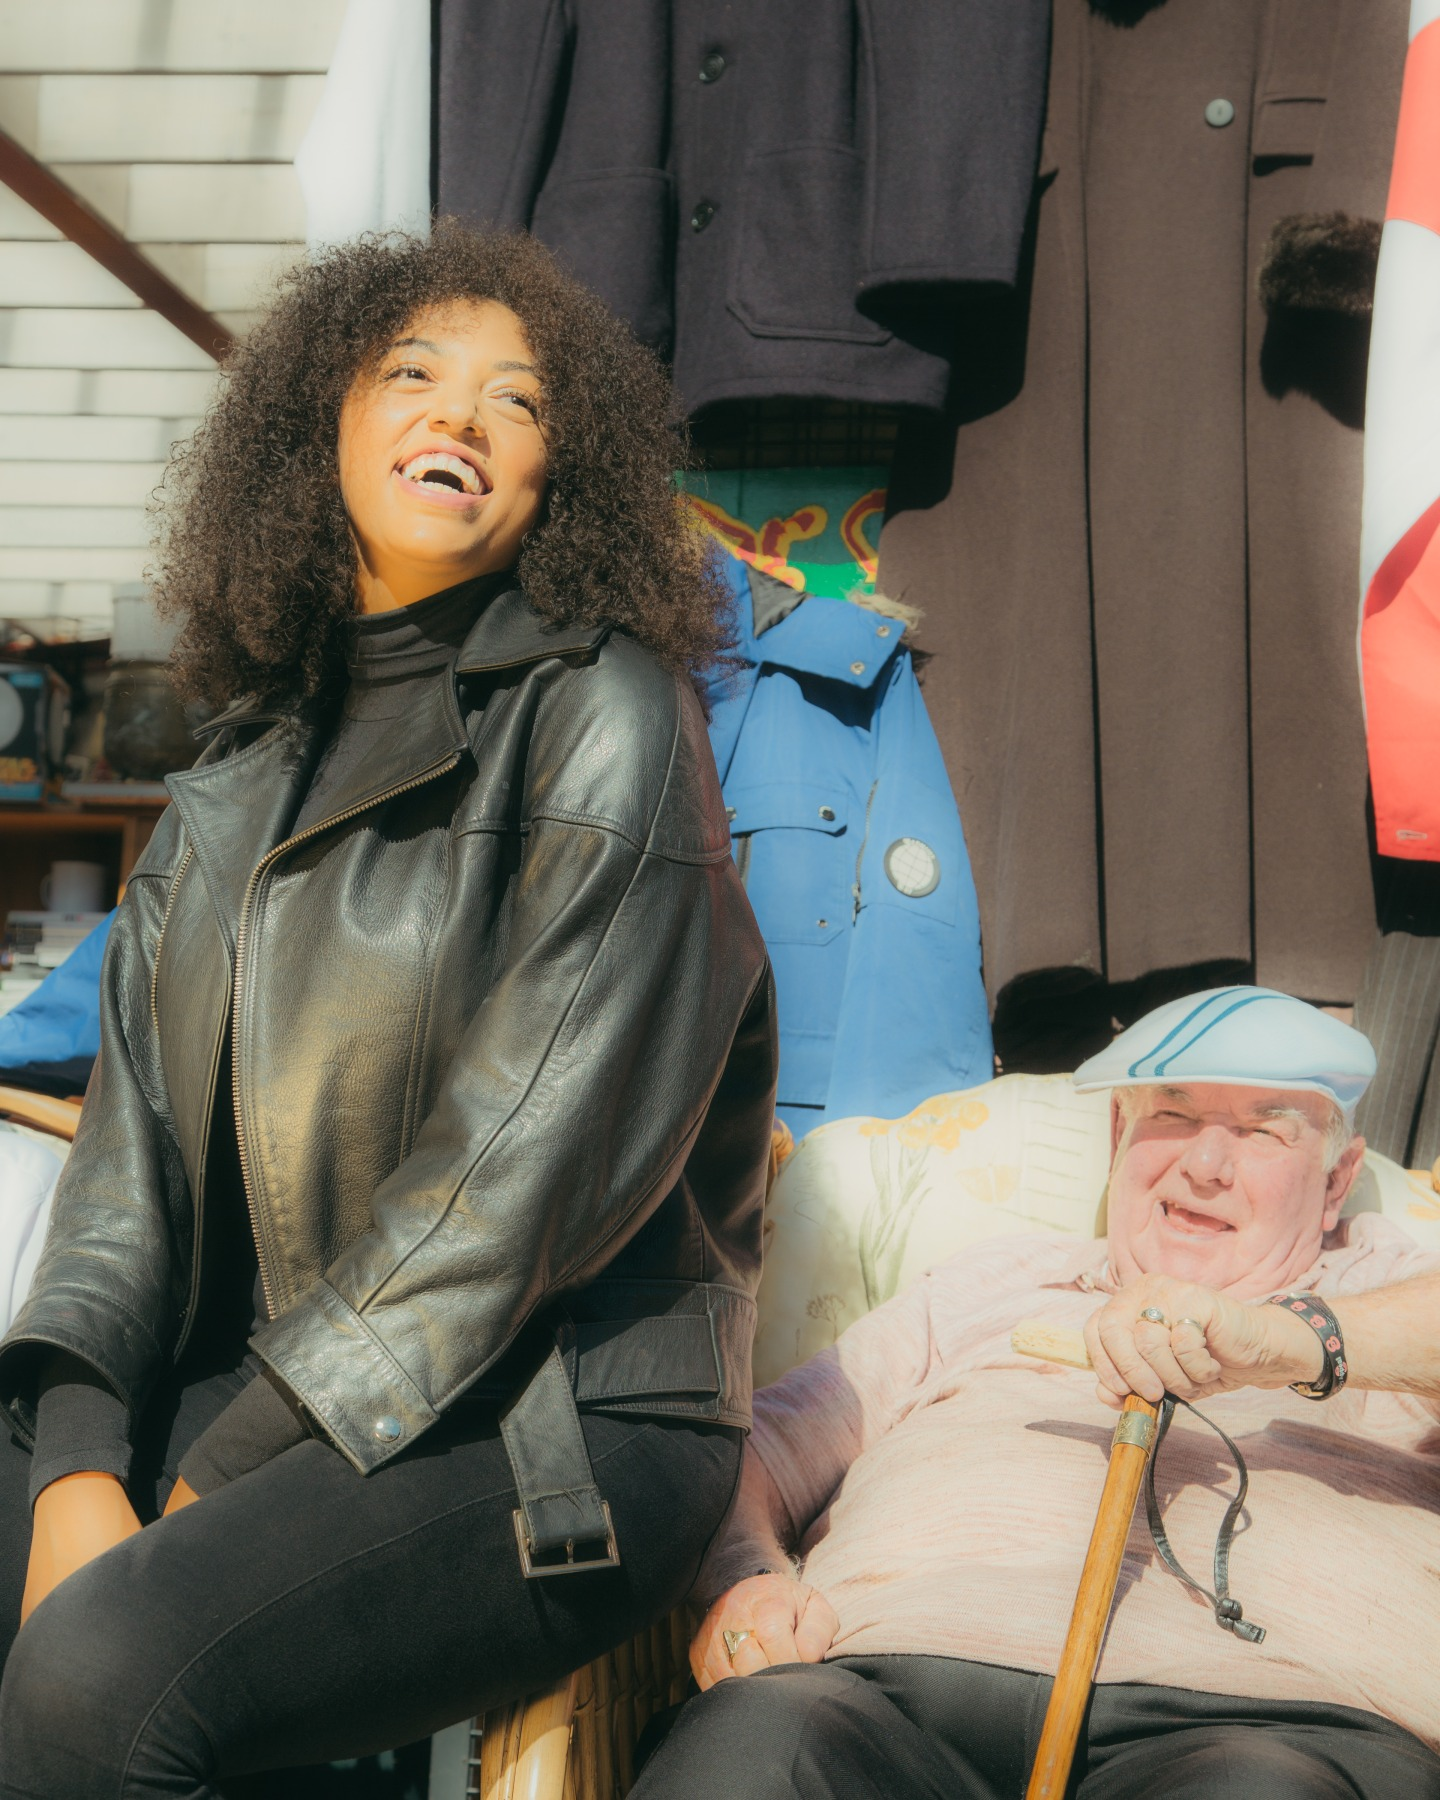 Mahalia's honest, soulful pop is perfect for this moment